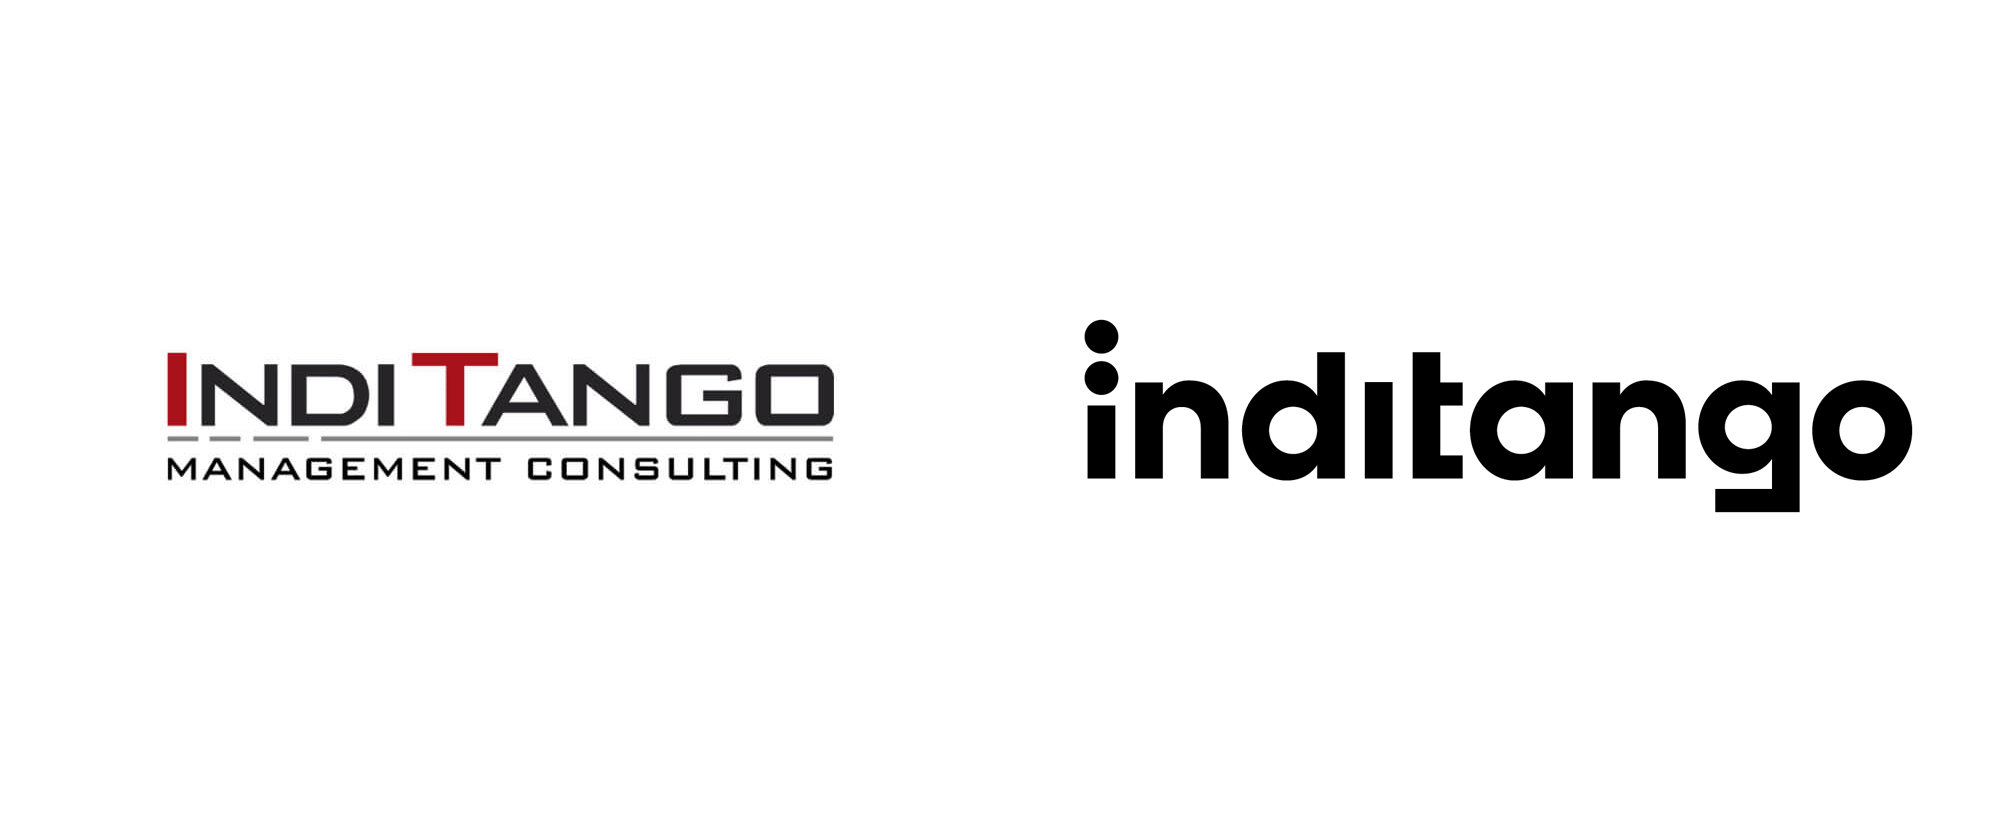 New Logo and Identity for inditango by EIGA